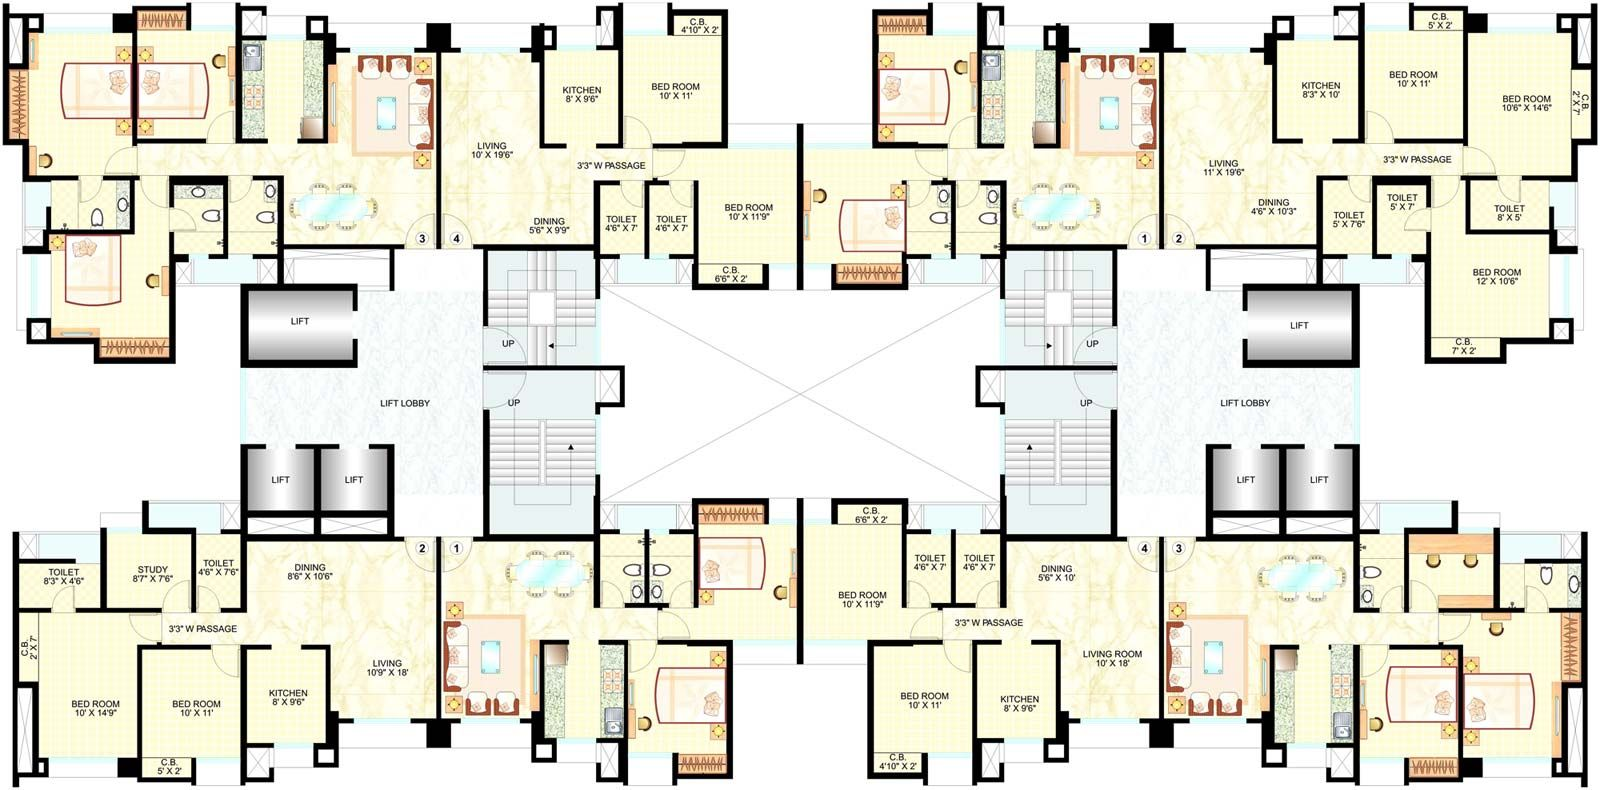 Apartment Floor Plan Design Fair Design 2018